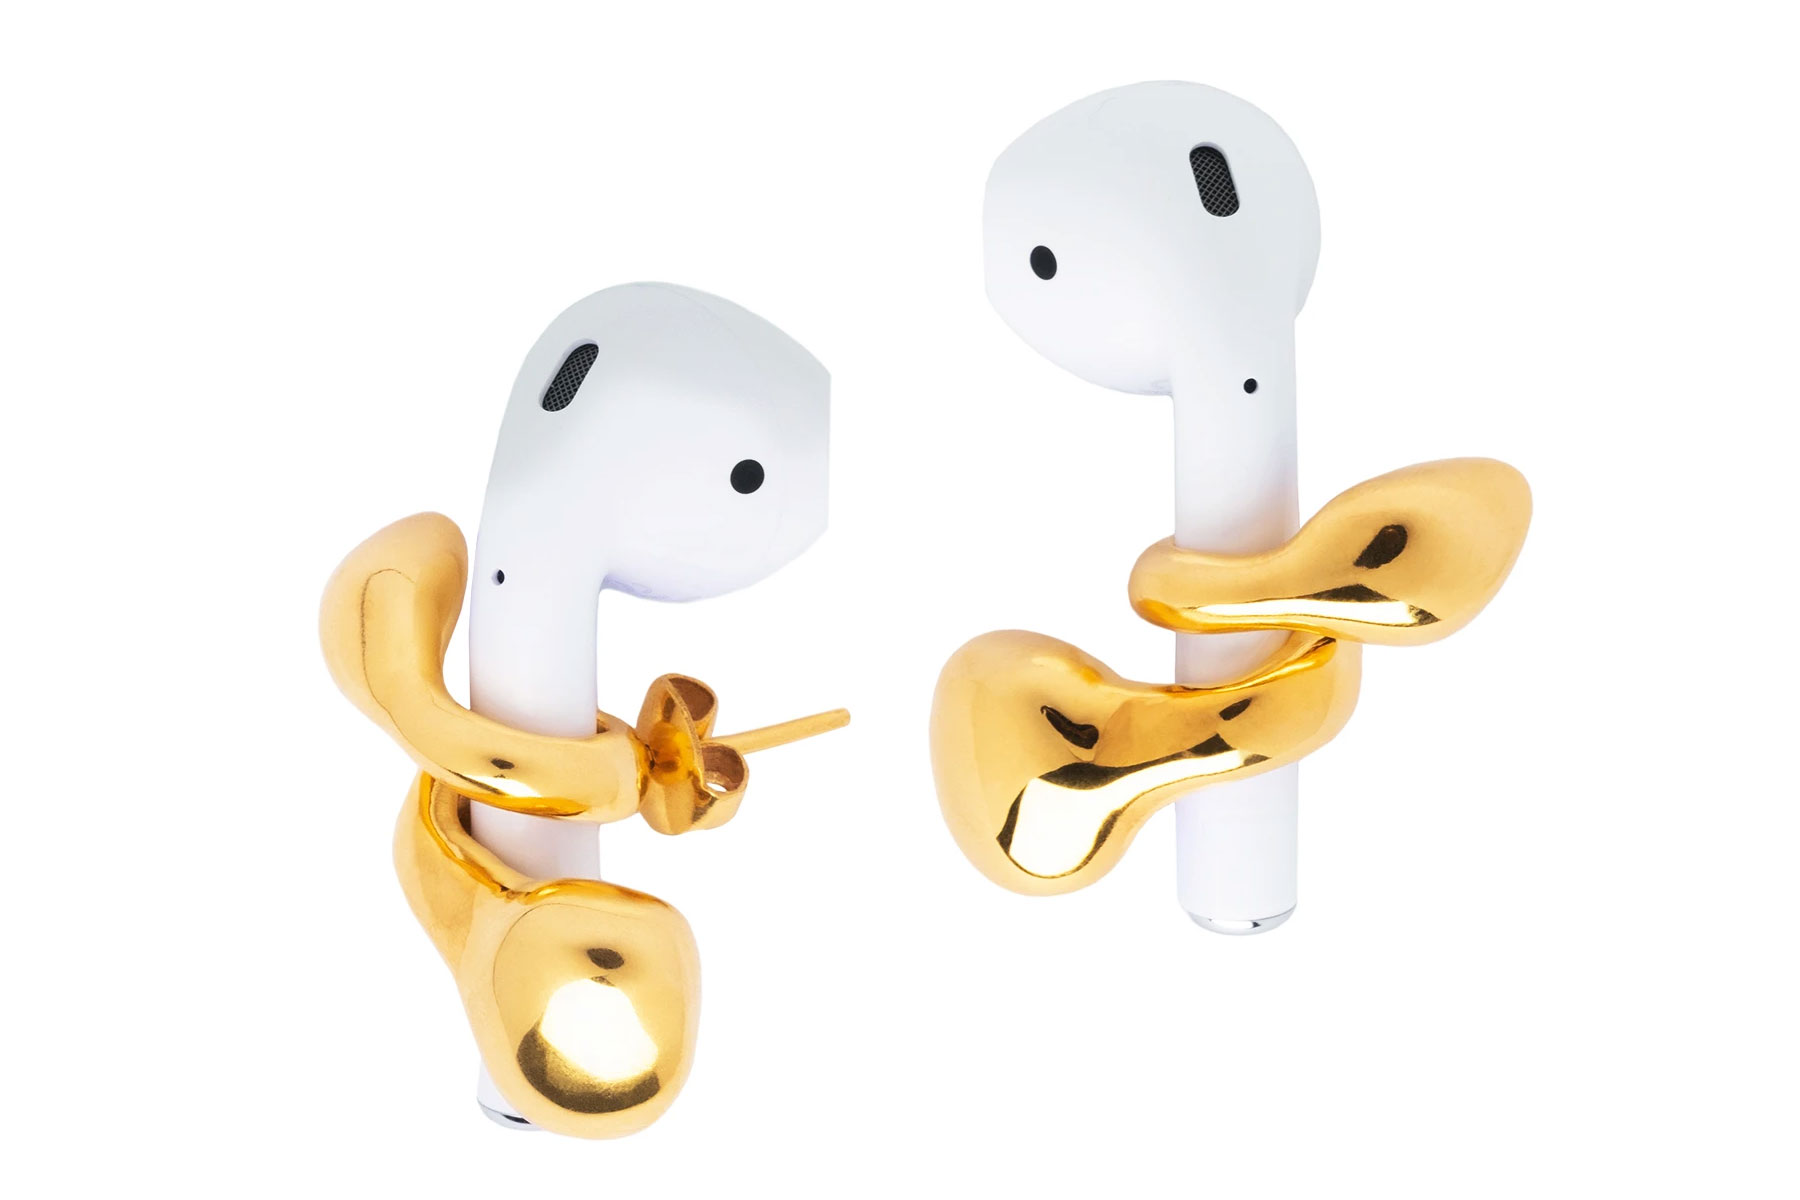 """AirPods are already a great gift for the techie, traveler, or music lover in your life, but take it up a notch by pairing them with Misho's Pebble Pods, earrings meant to help secure the AirPods in the wearer's ears — and boost their style game in the process, "" — Nina Ruggiero, Deputy Digital EditorTo buy: (AirPods Pro) amazon.com, $TK; Misho Pebble Pods, mishodesigns.com, $120"